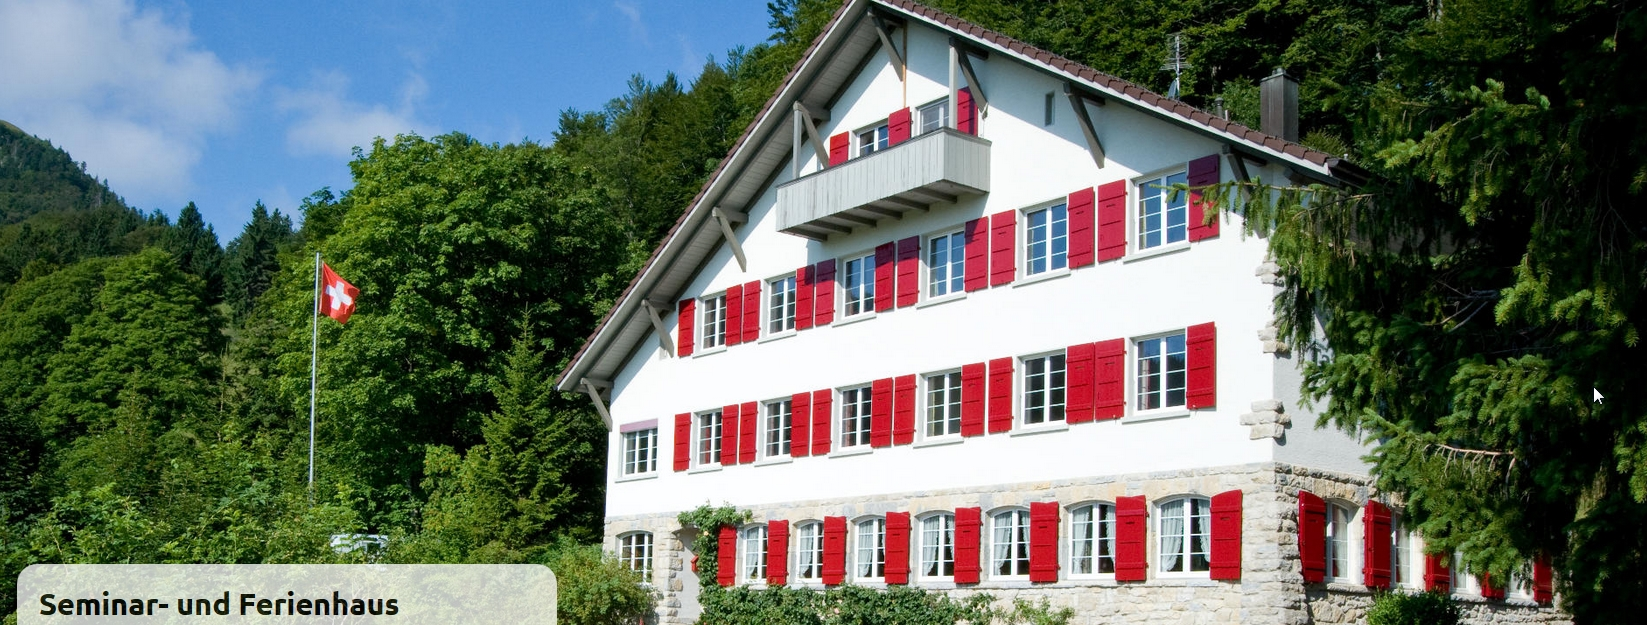 immobilien solothurn338